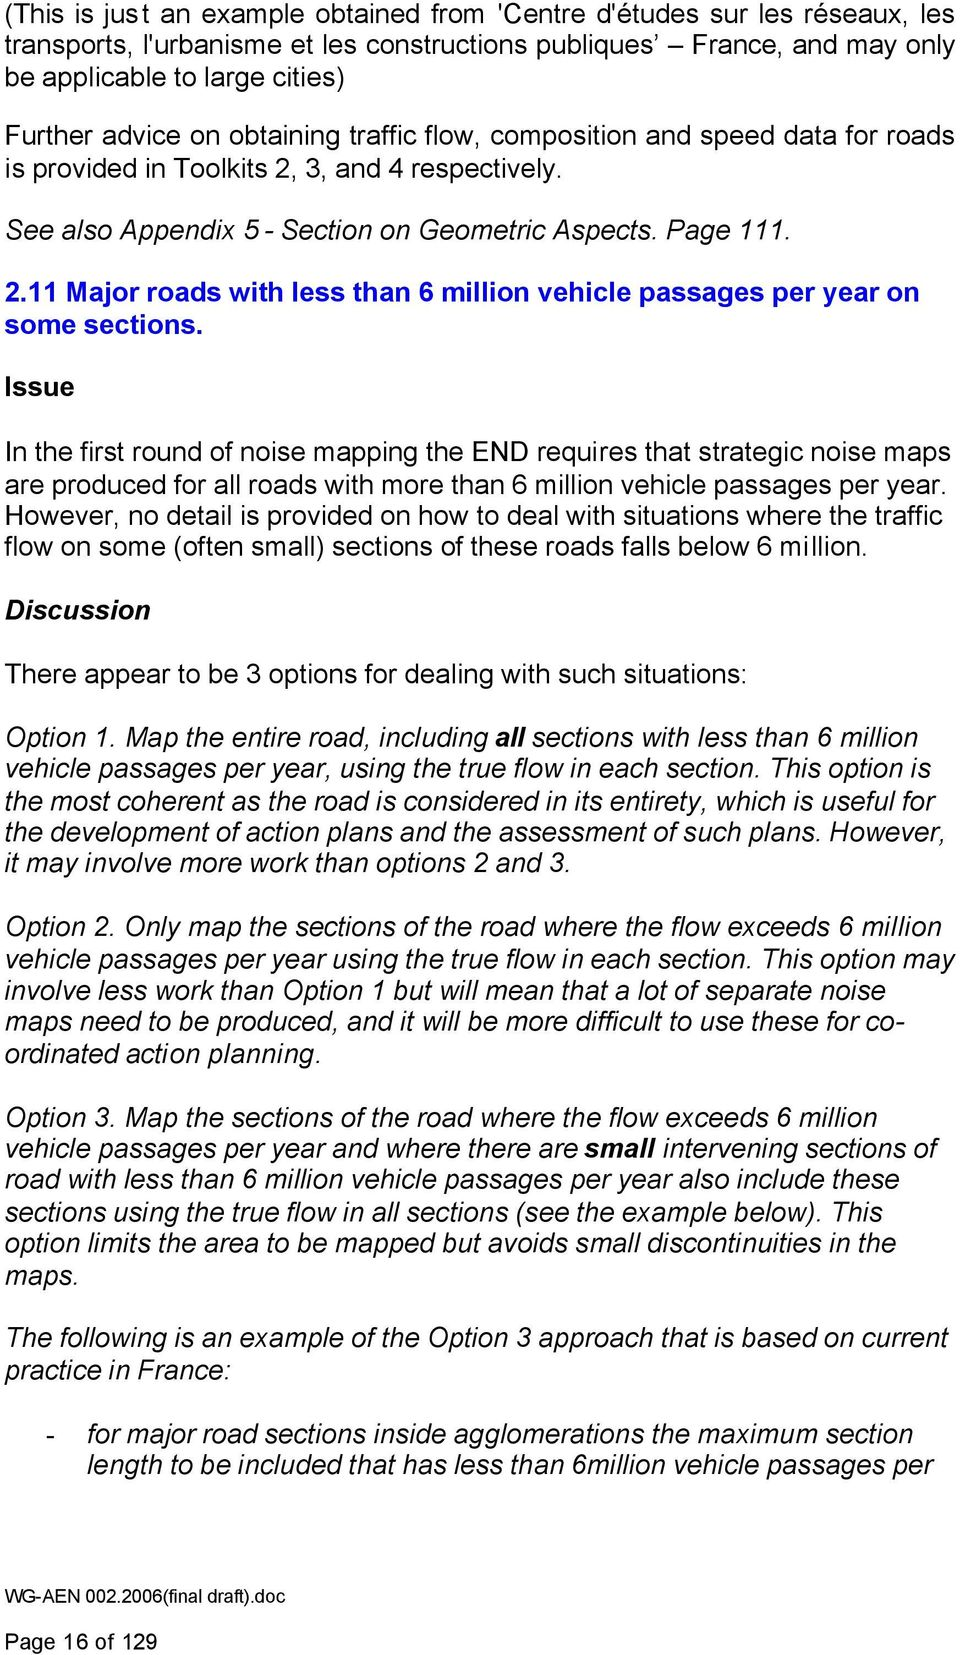 Issue In the first round of noise mapping the END requires that strategic noise maps are produced for all roads with more than 6 million vehicle passages per year.